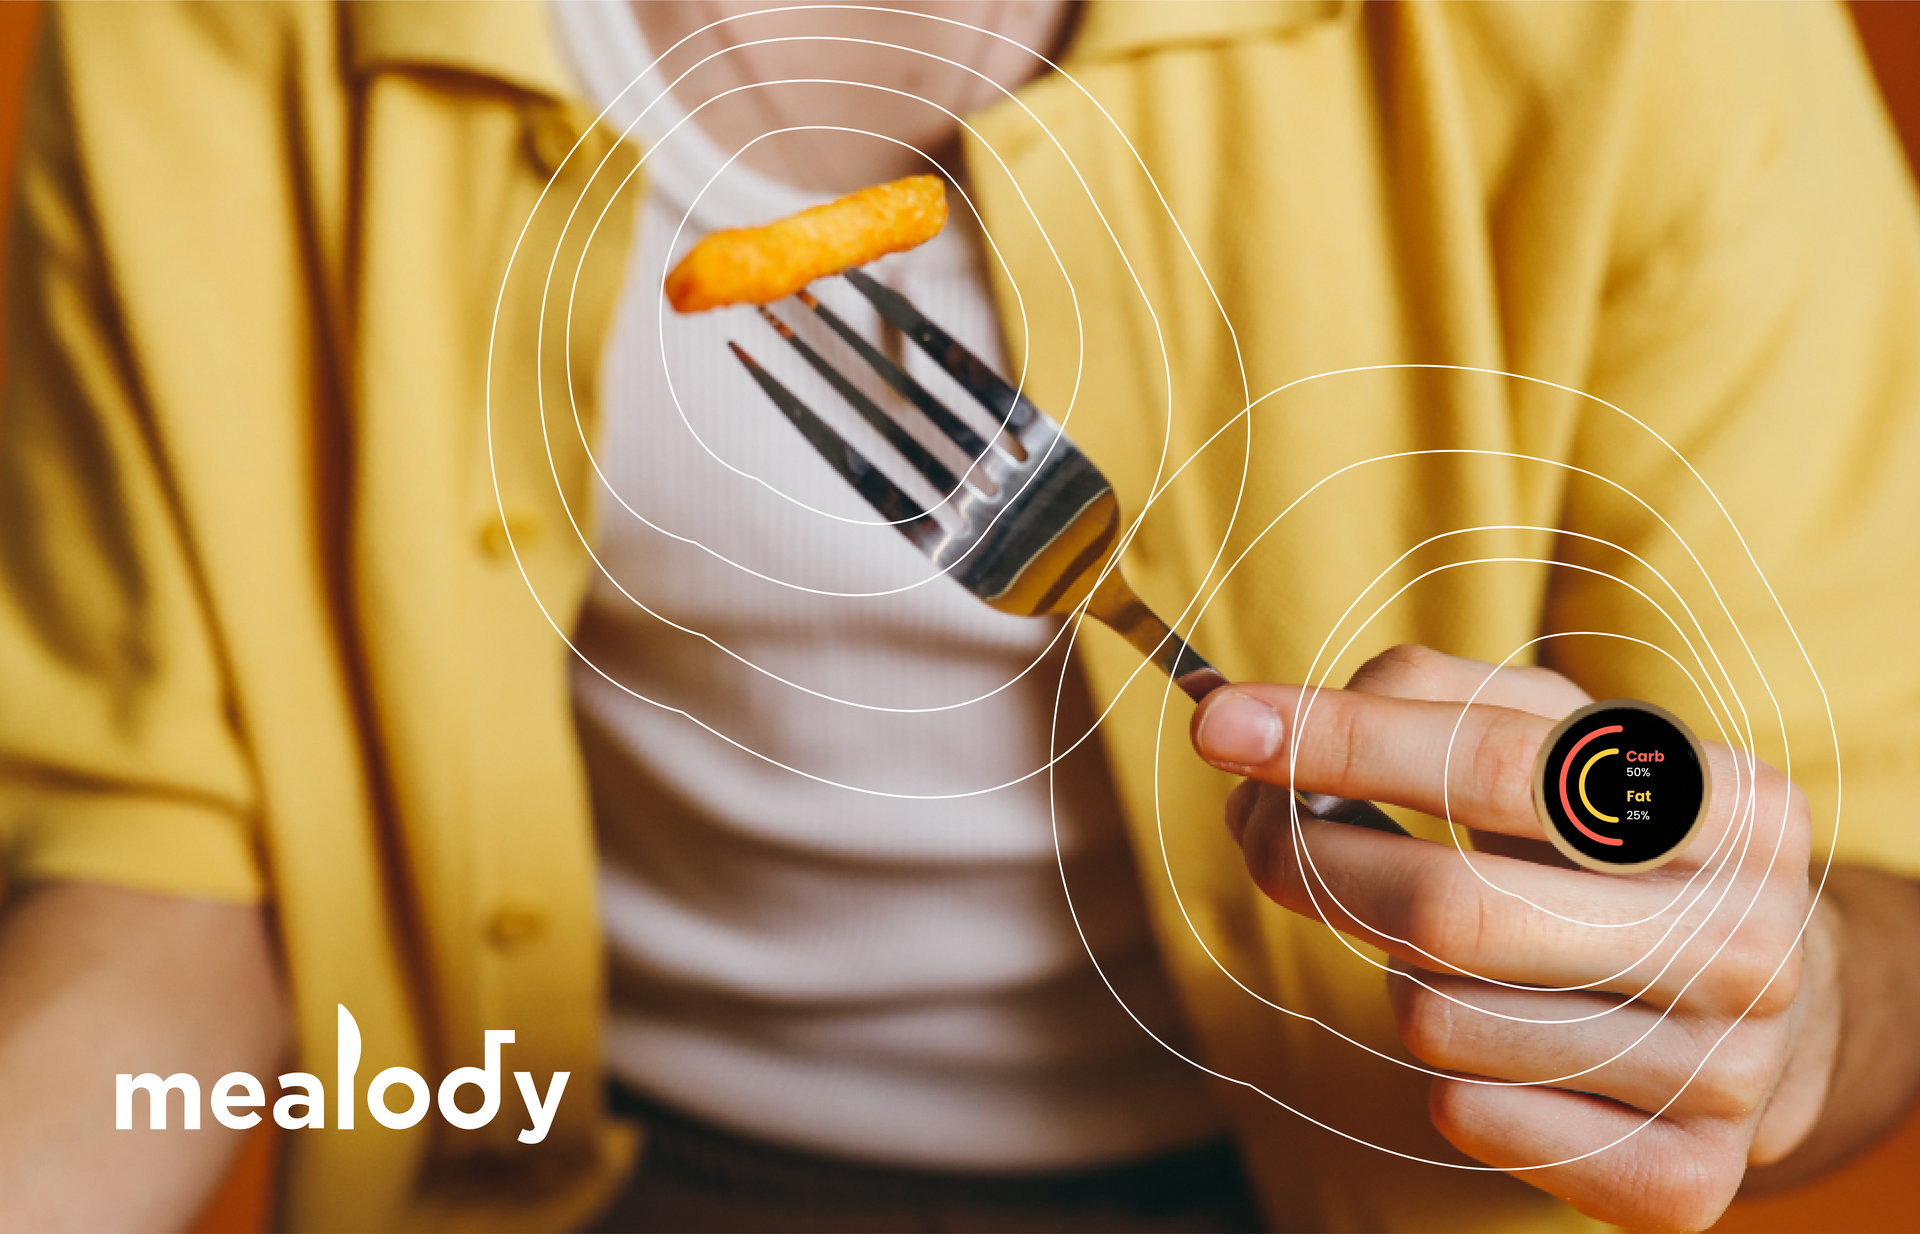 Sensing ring can detect nutritional elements from your food